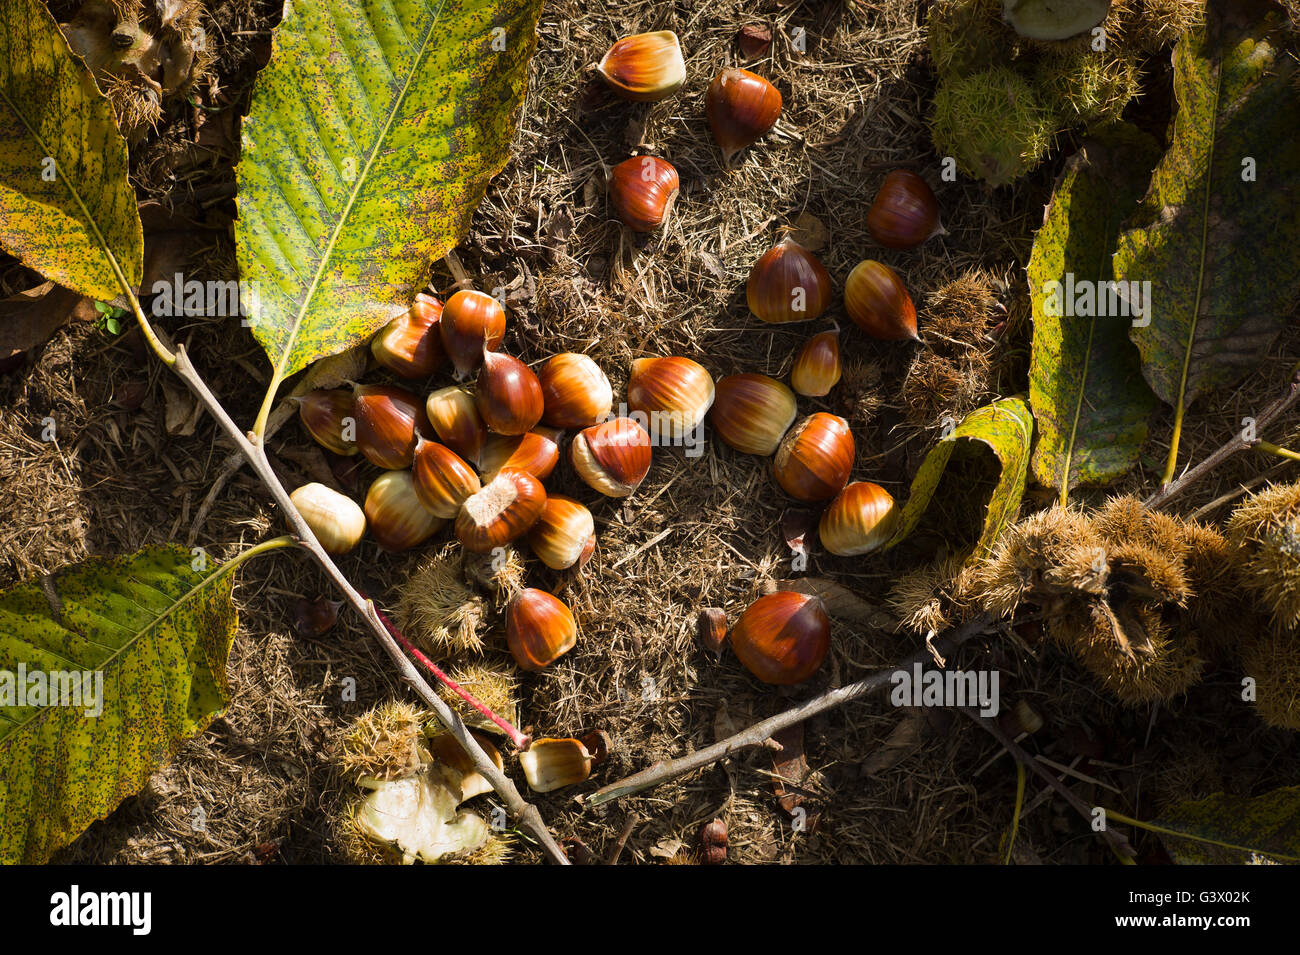 Fallen sweet chestnuts on the ground beneath the tree in autumn - Stock Image